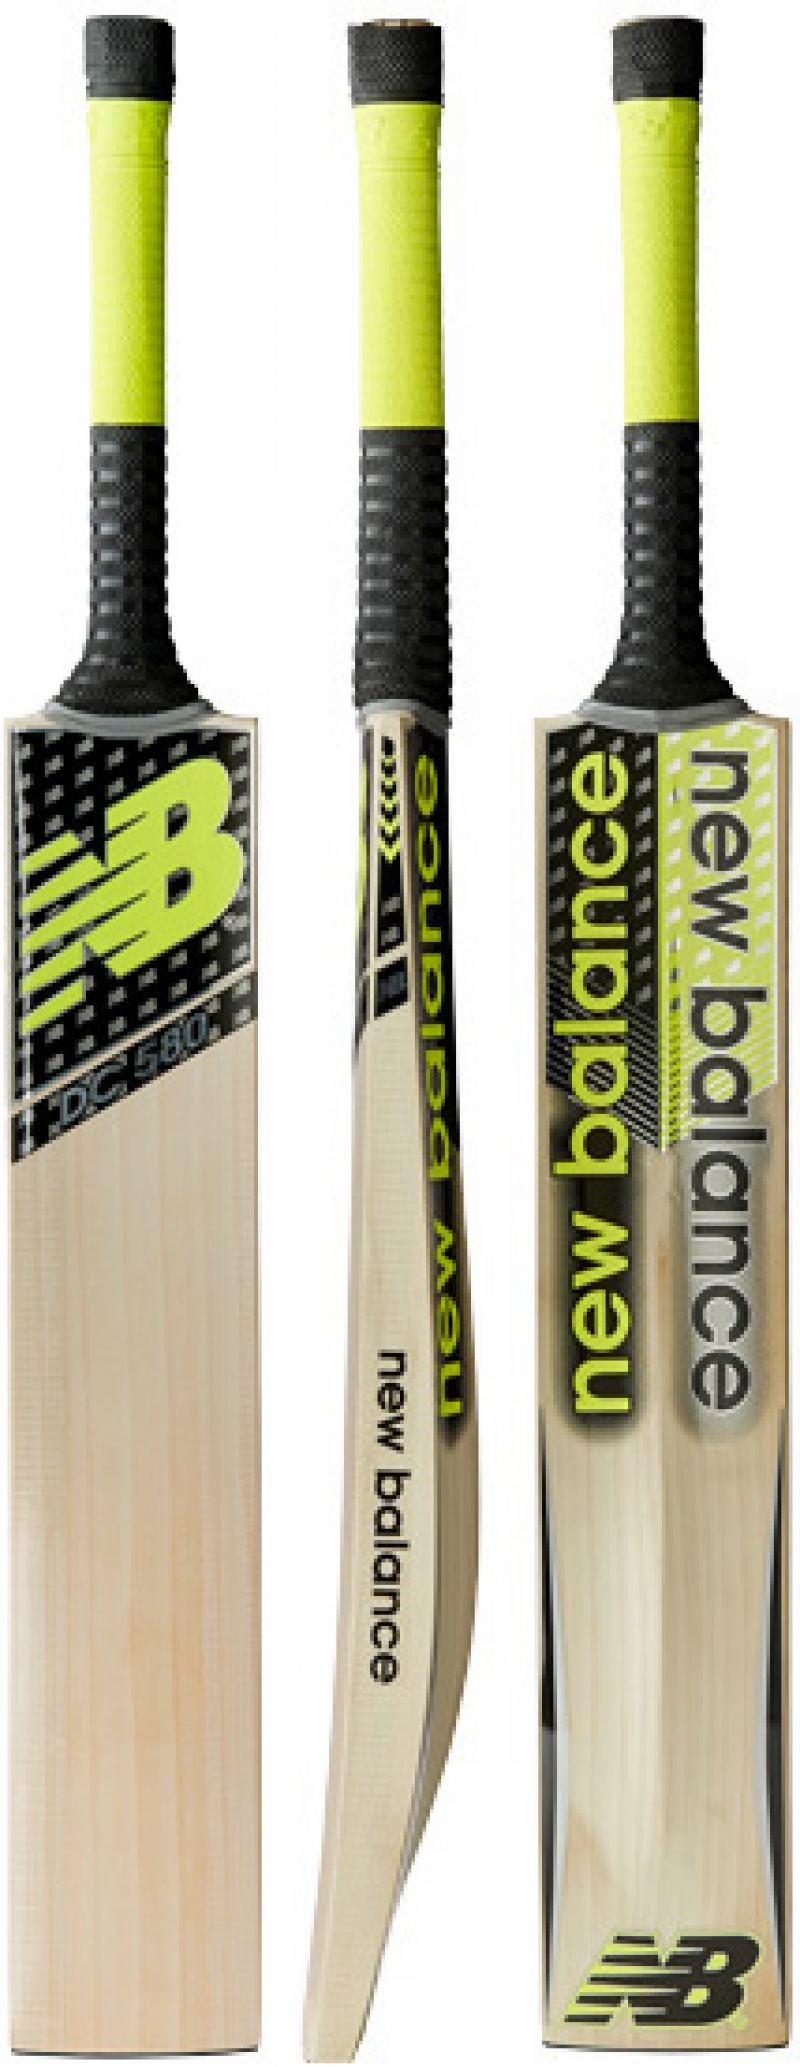 2017 new balance dc 580 junior cricket bat